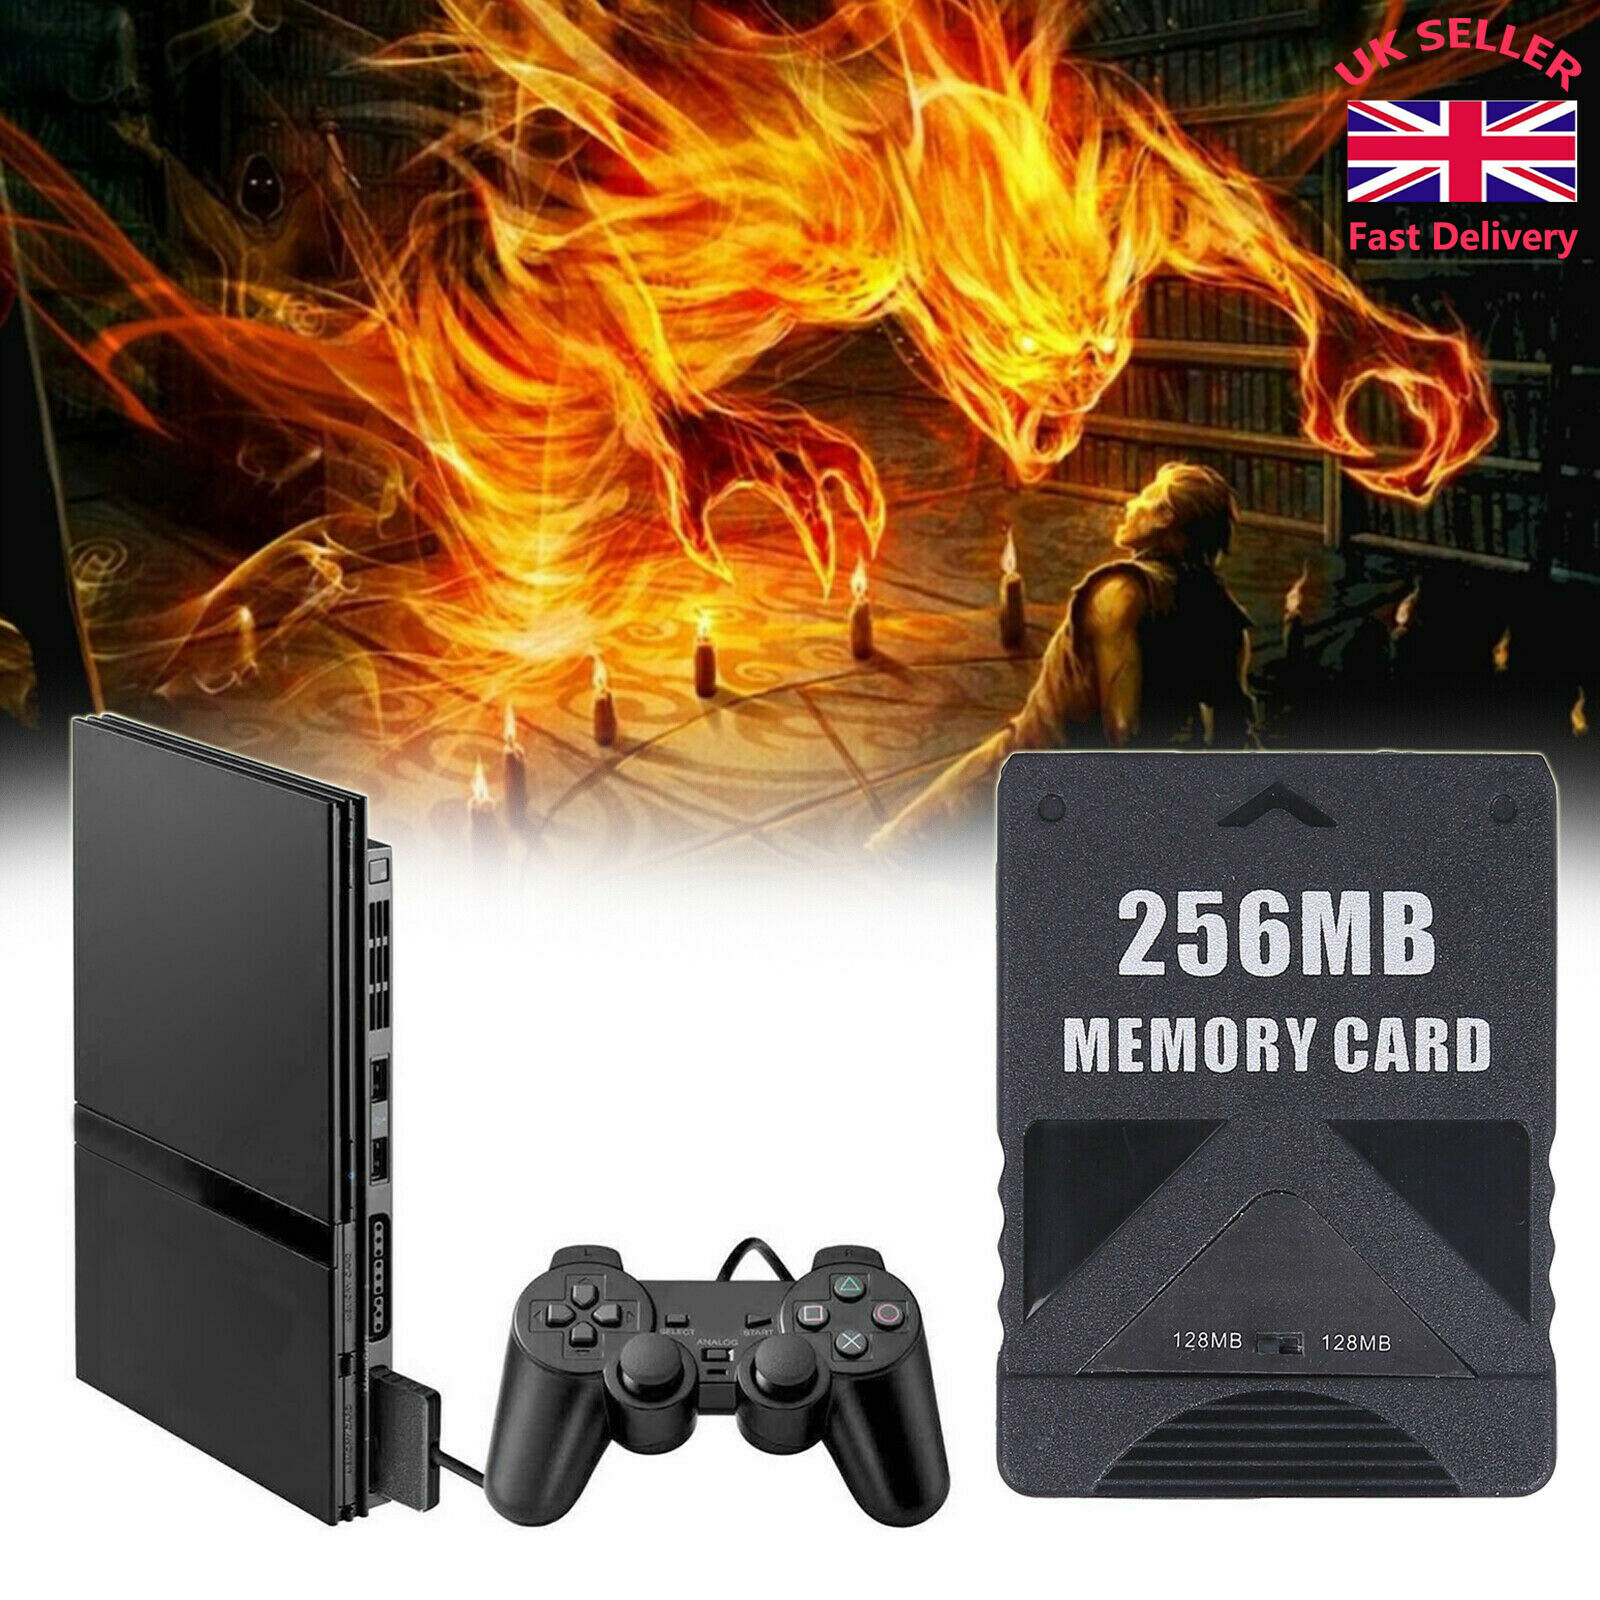 256MB Megabyte Memory Card for Sony PS2 PlayStation 2 Bland New UK